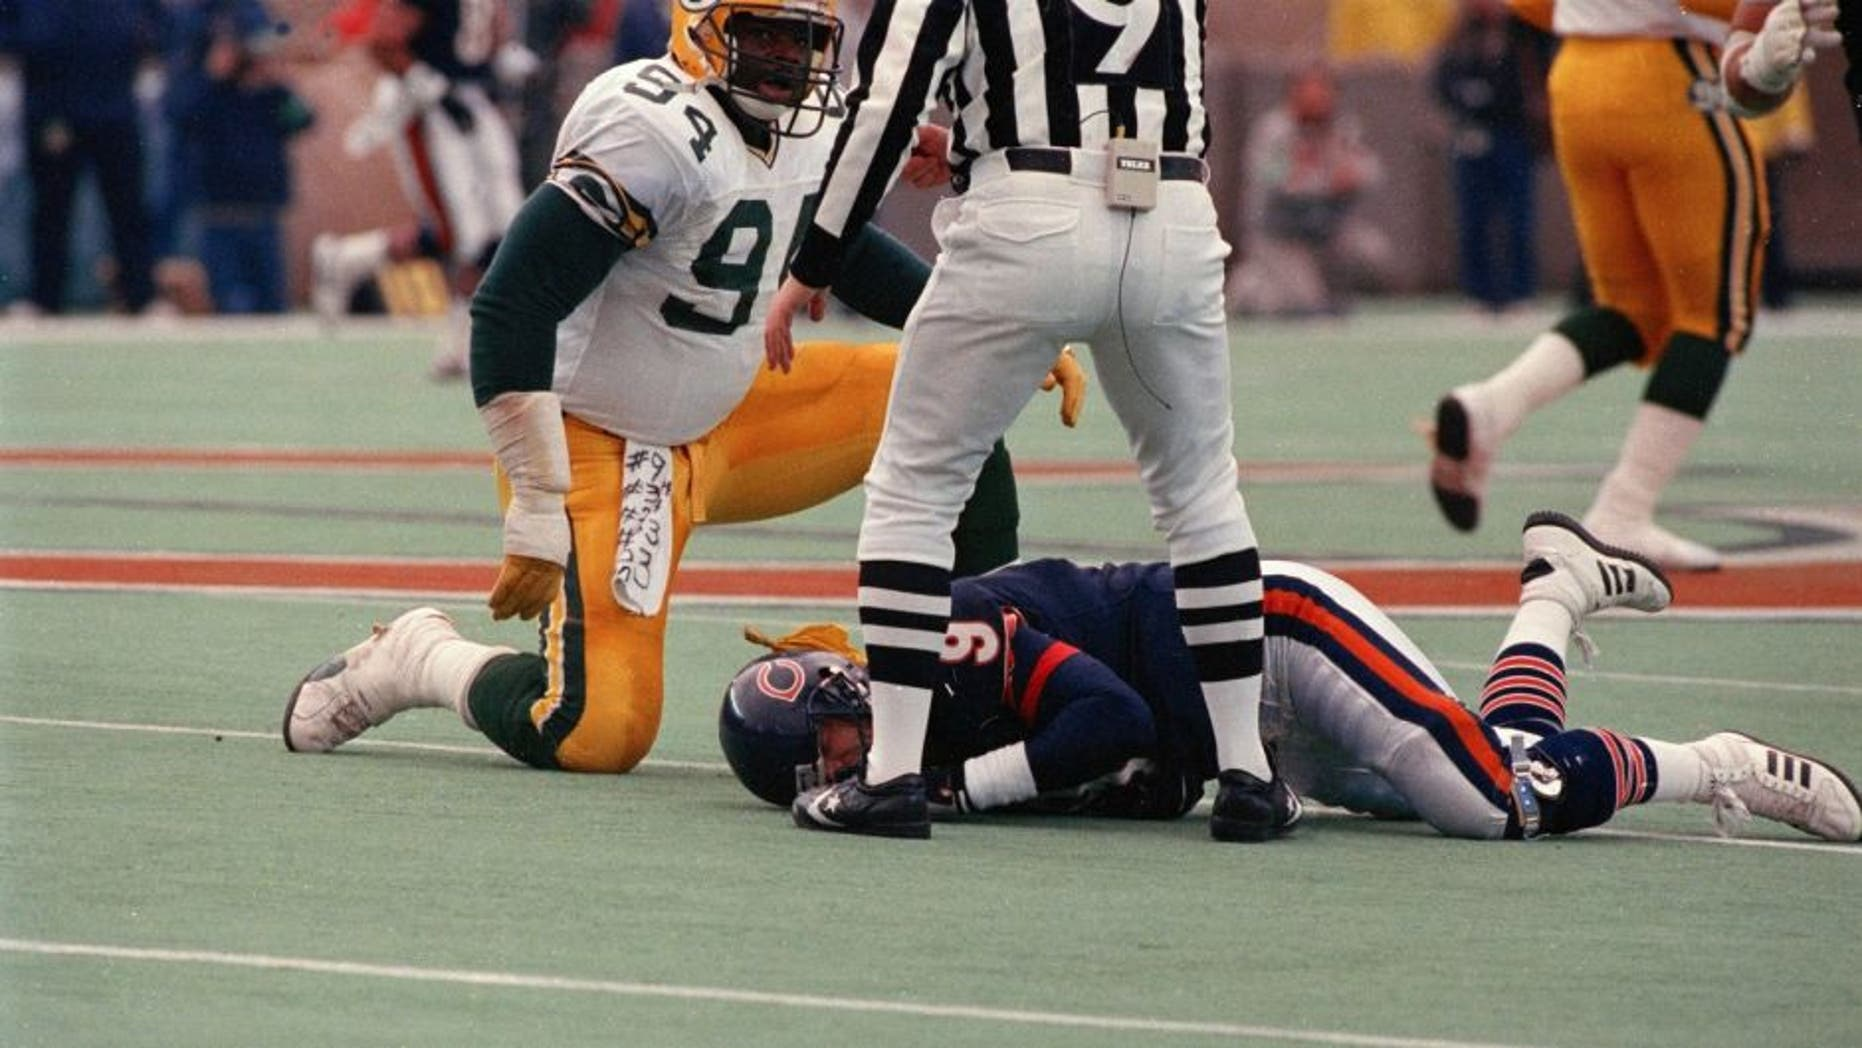 Green Bay Packer Charles Martin (94) checks on Bears quarterback Jim McMahon after slamming him to the ground Sunday, Nov. 23, 1986 at Soldier Field in Chicago. (Edward Wagner/Chicago Tribune/TNS)